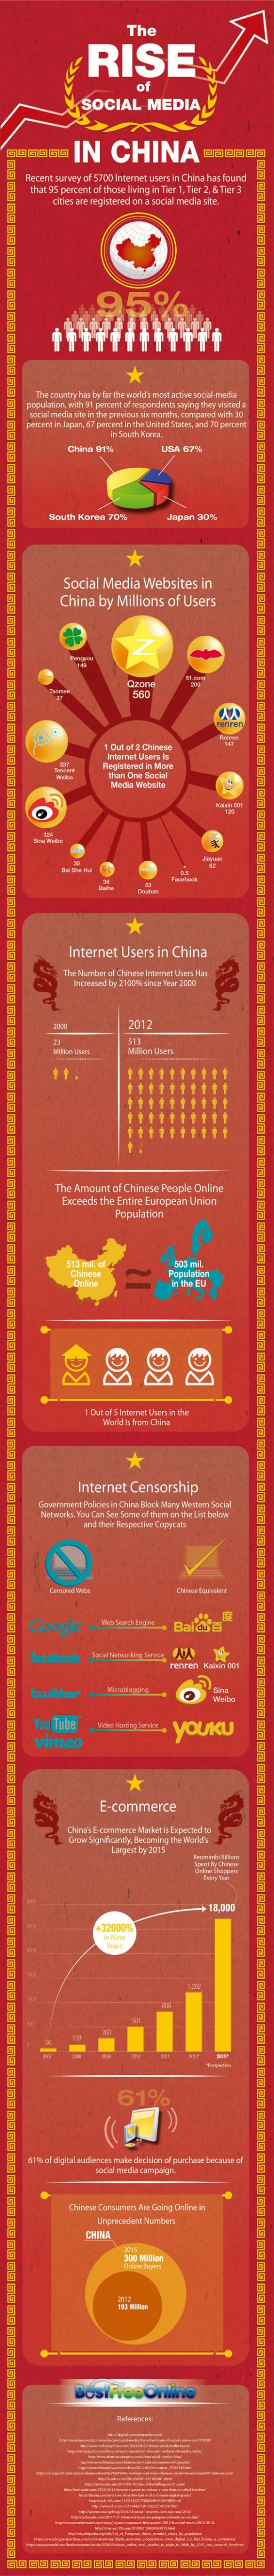 Rise of Social Media in China (infographic)